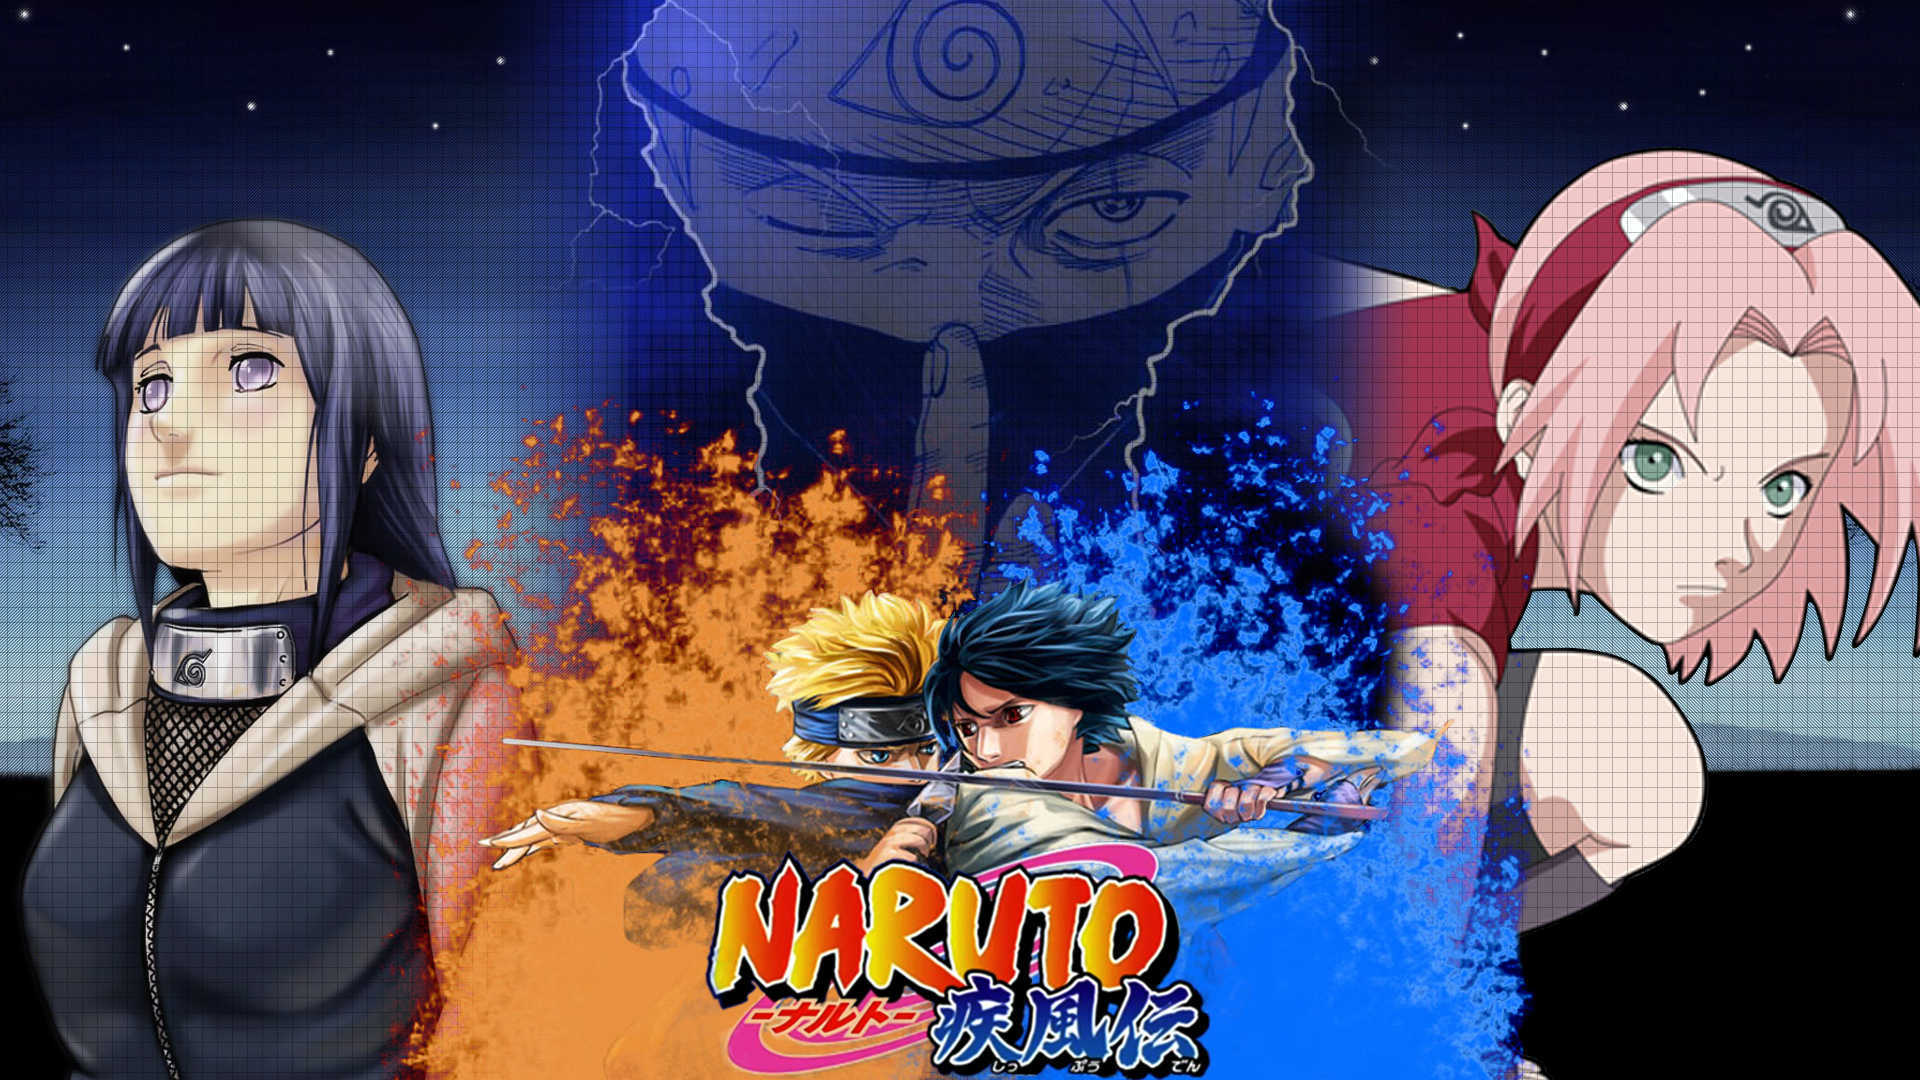 Naruto Hd Wallpaper And Image Background